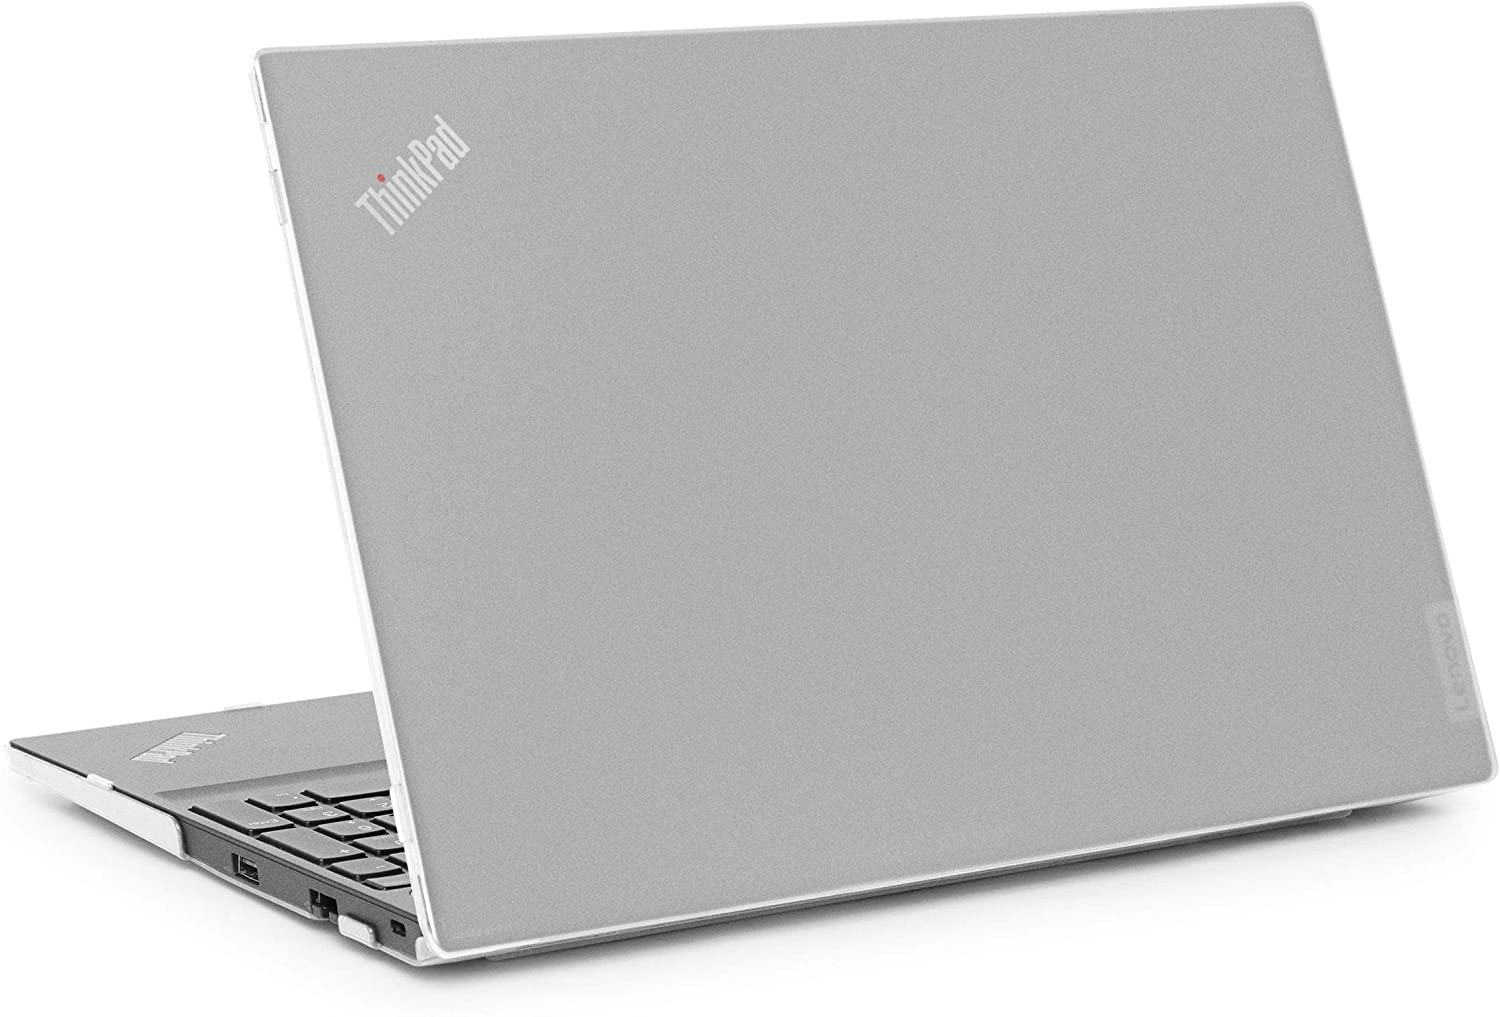 mCover Hard Shell Case for 2020 Lenovo ThinkPad E14 14-inch AMD Gen 2 Laptop Computers ( NOT Fitting Other Lenovo laptops ) - LEN-TP-E14-G2 Clear